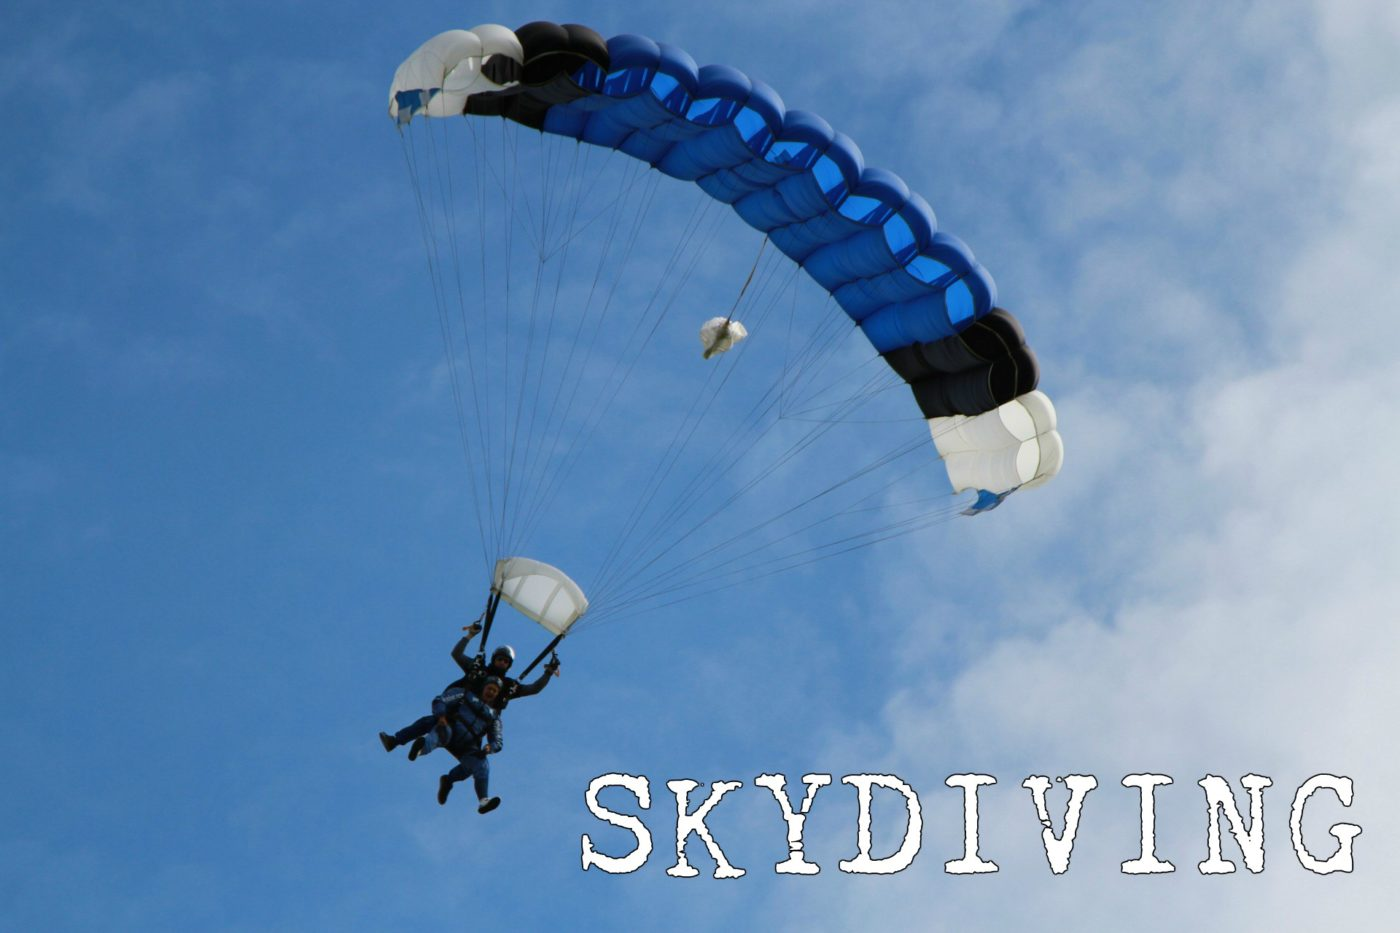 Skydiving challenges